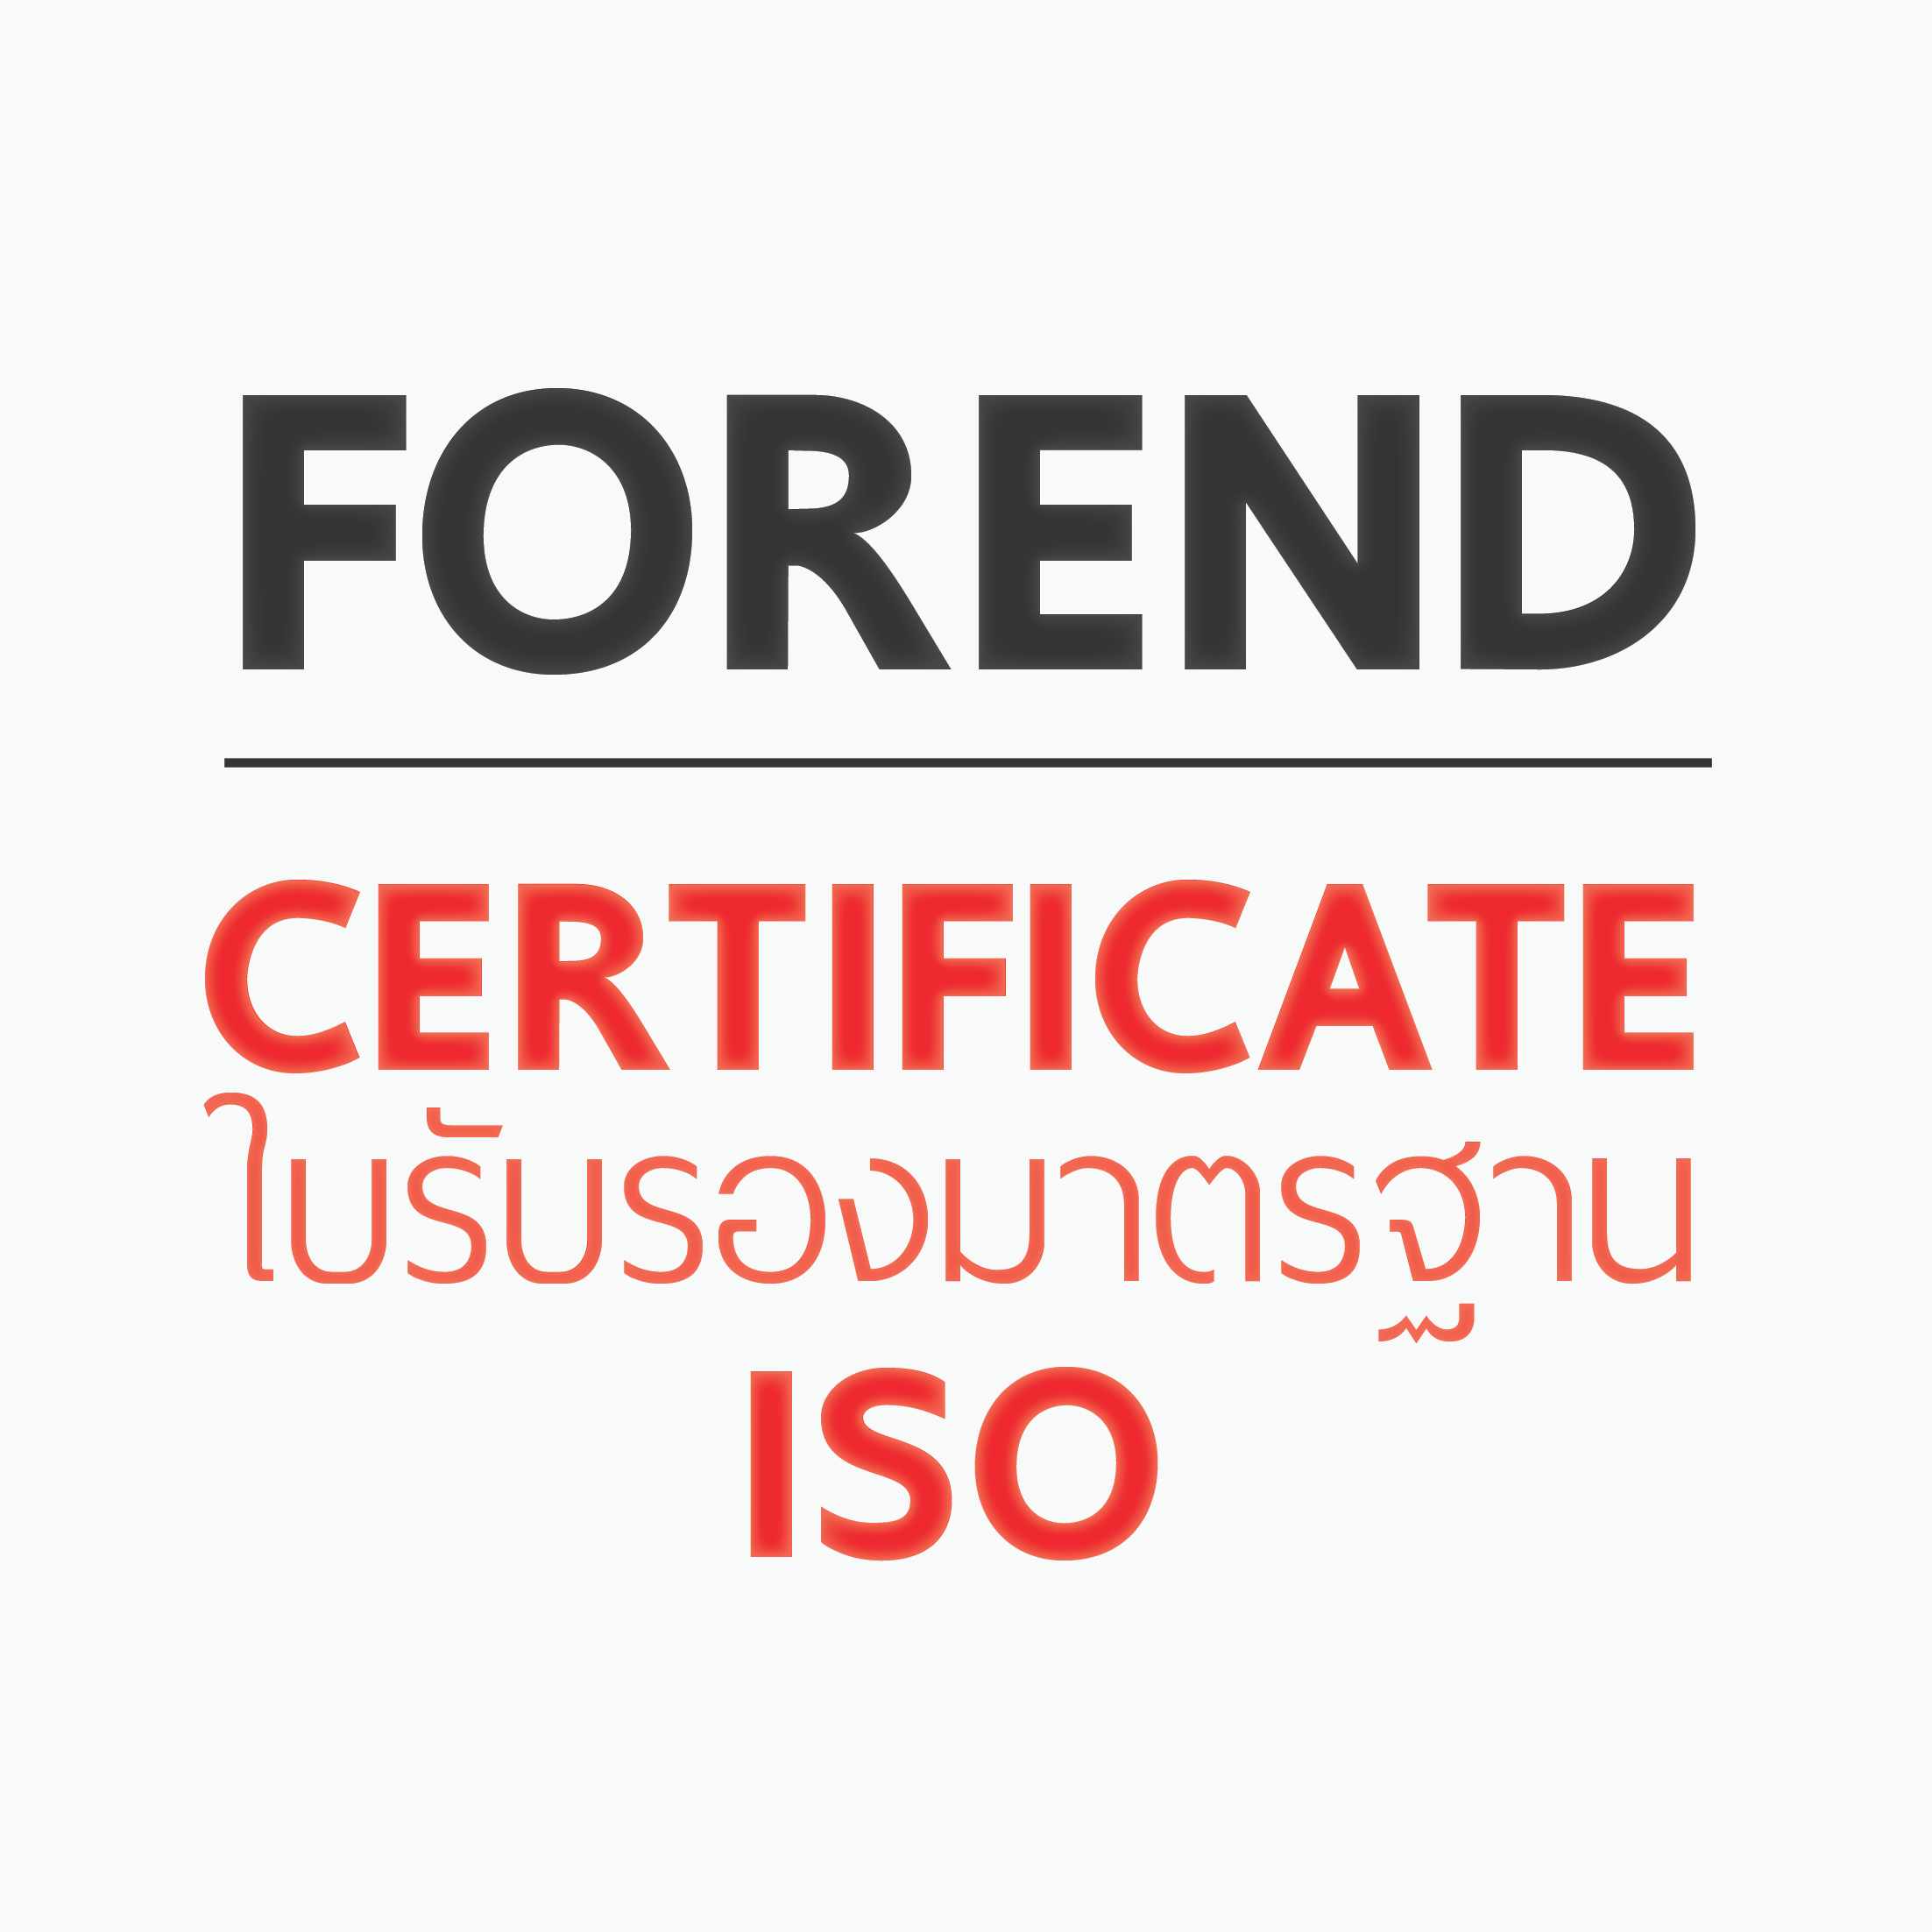 CERTIFICATE FOREND